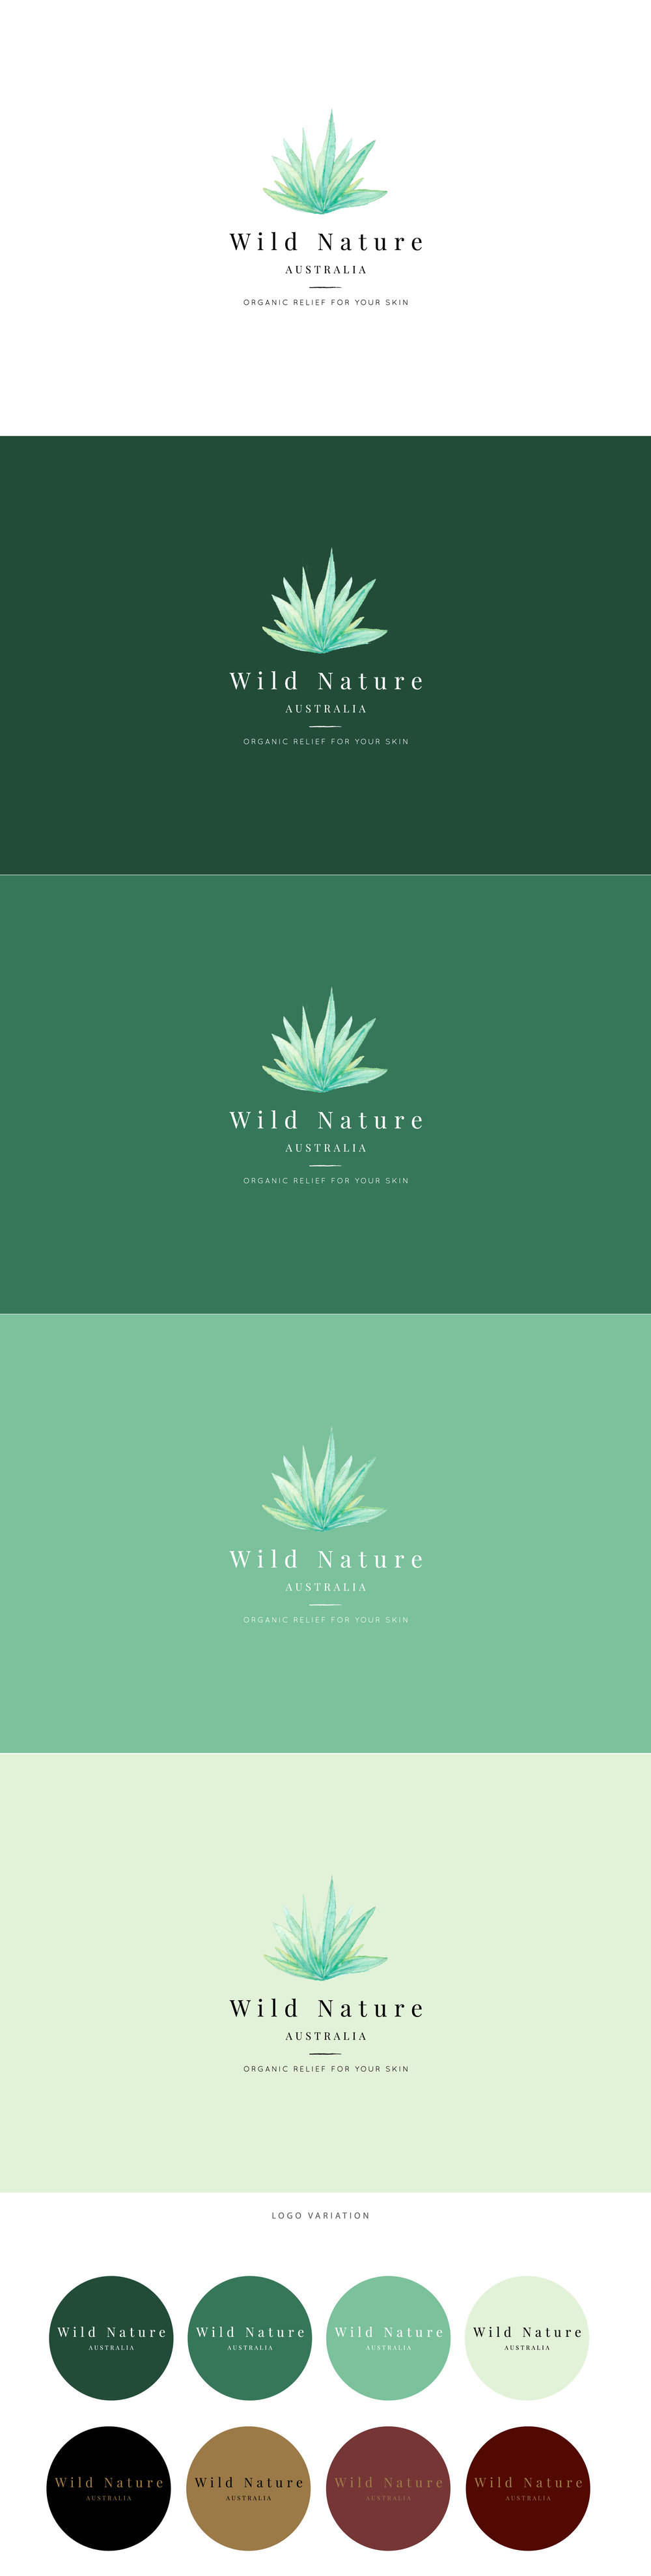 nature style guide